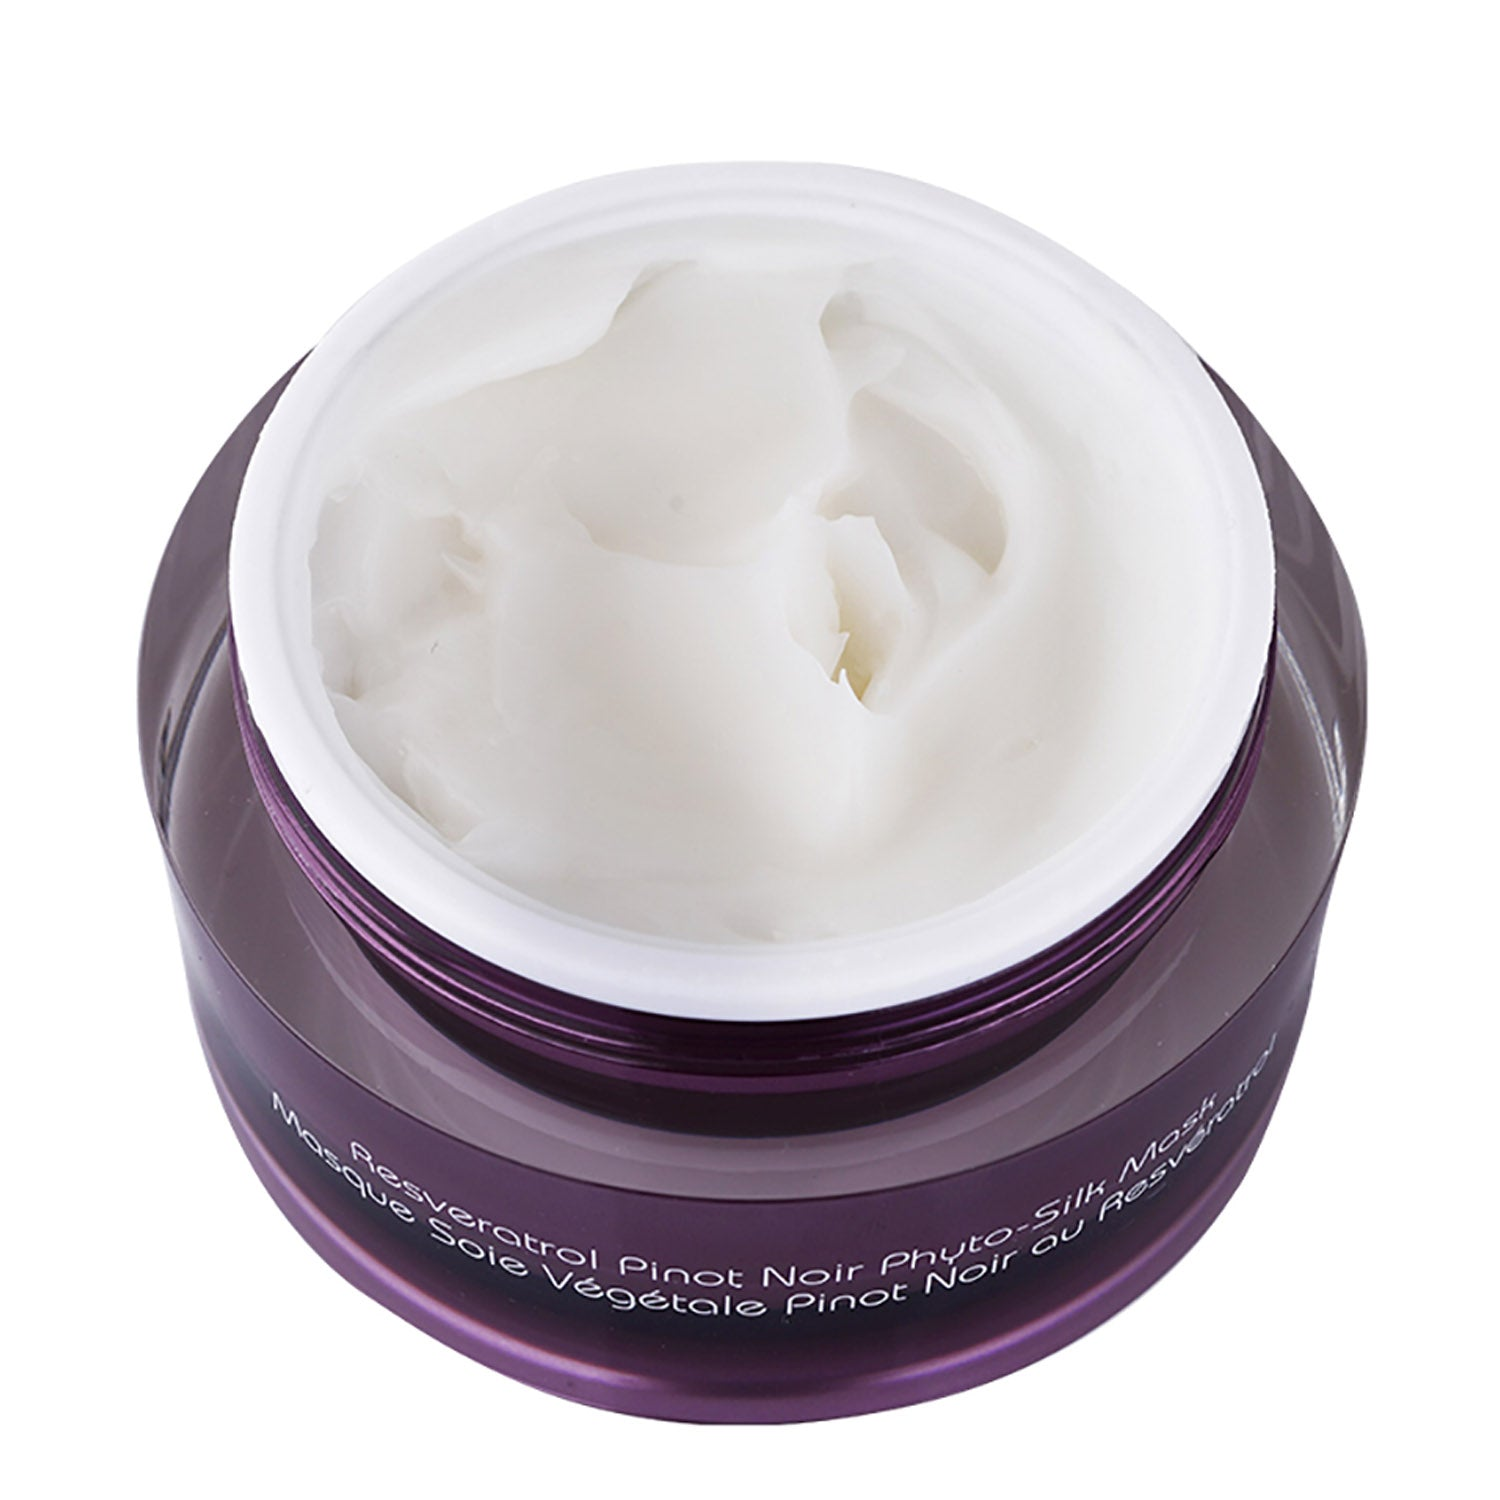 Vine Vera Resveratrol Hydrating Silk Leave On Mask